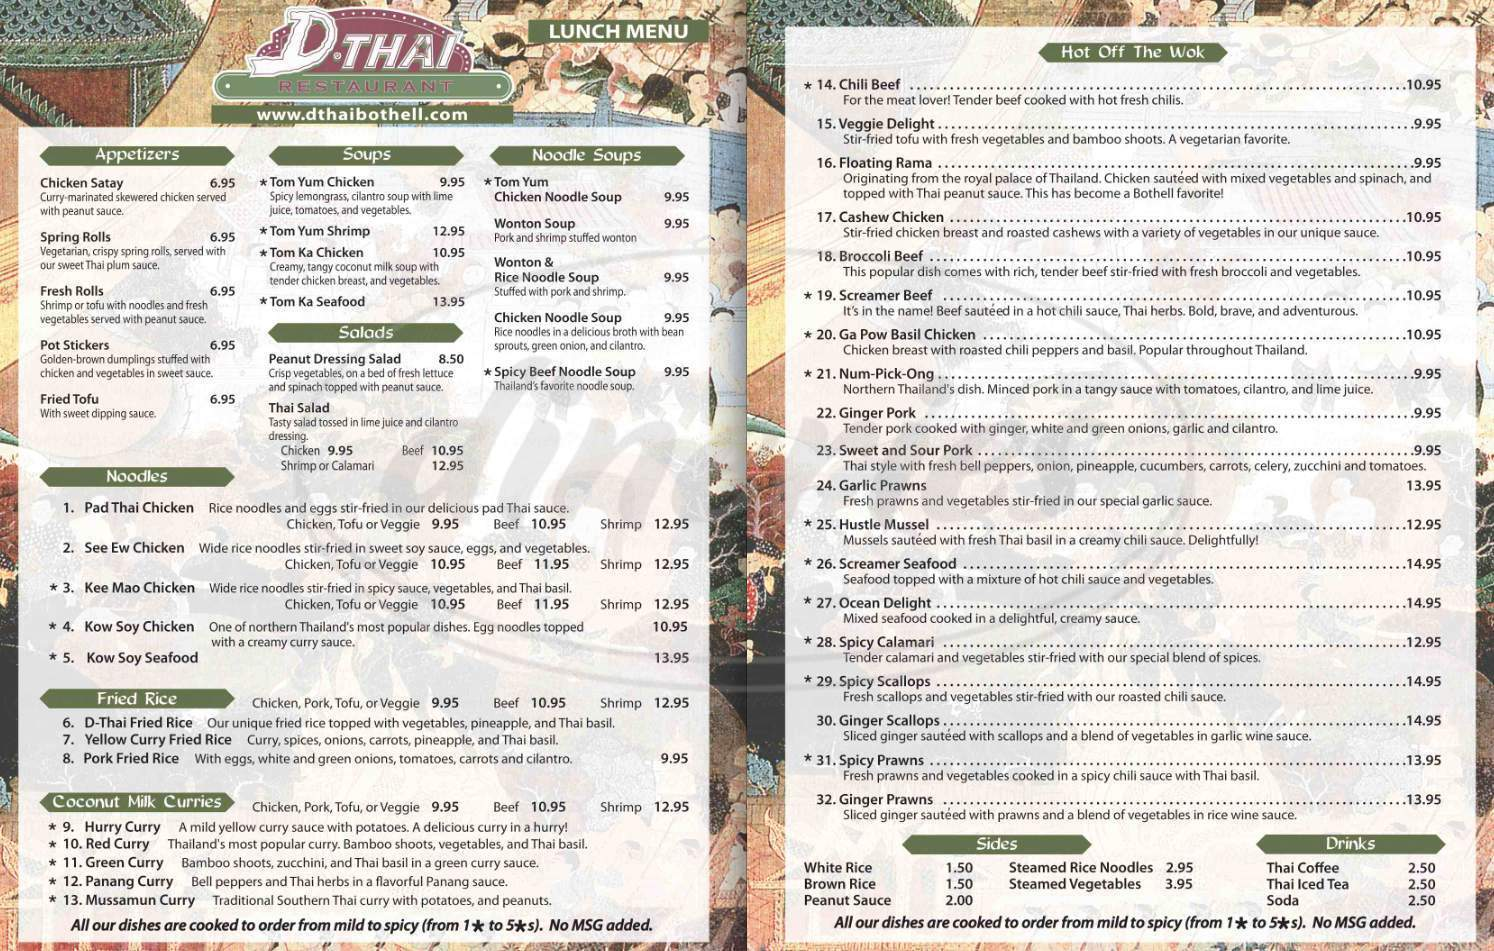 menu for D-Thai Restaurant